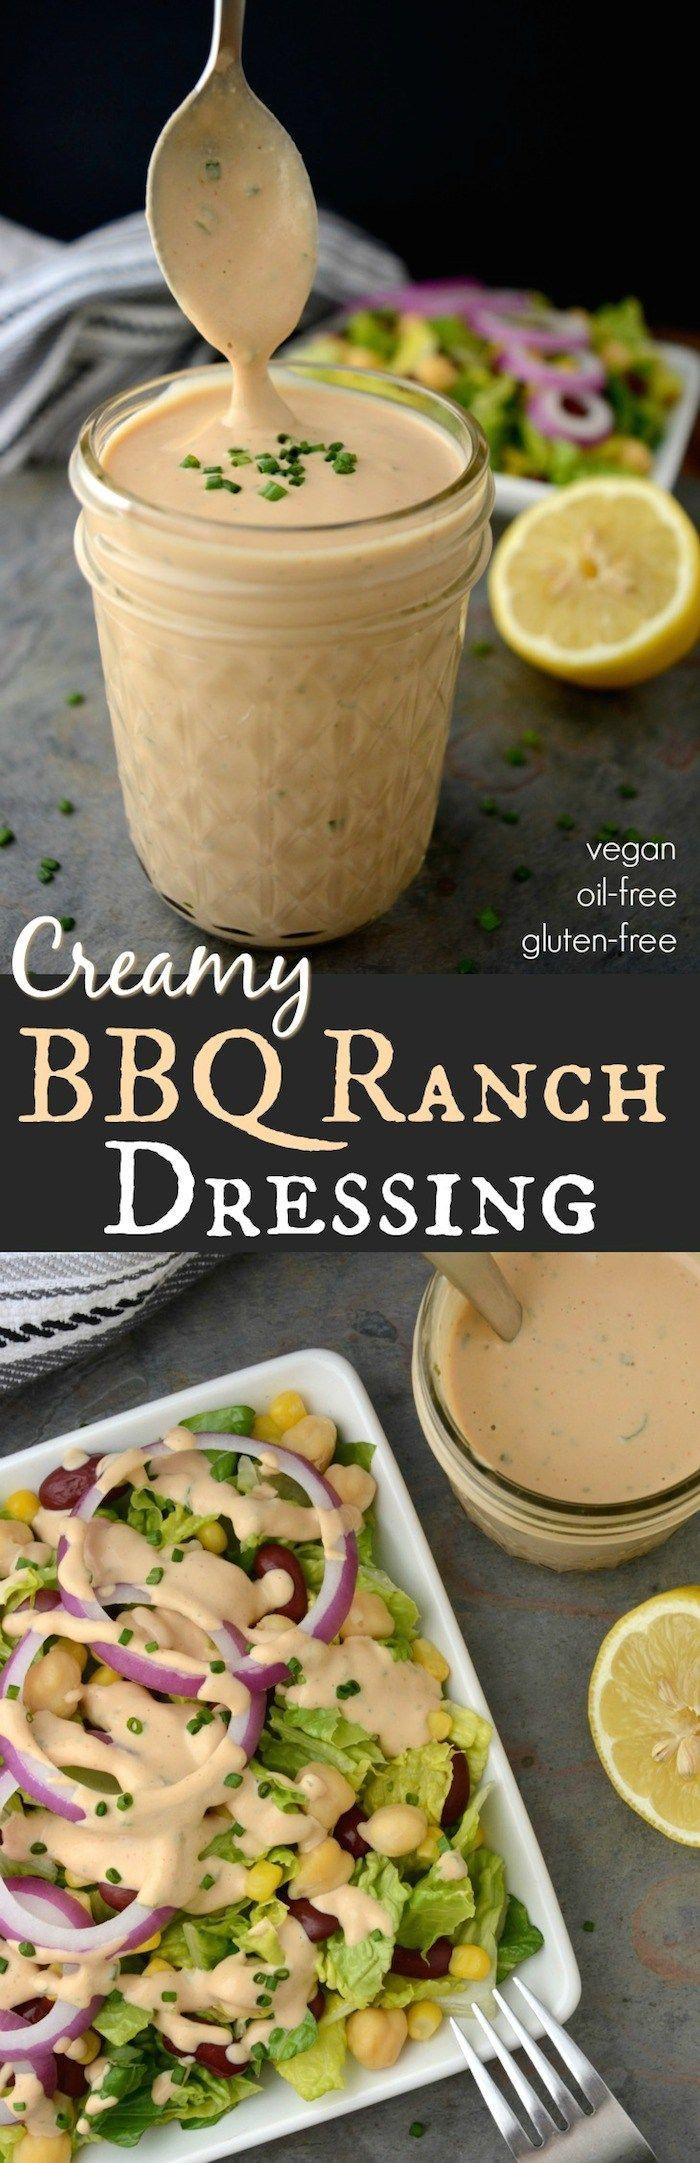 Creamy BBQ Ranch Dressing –A creamy dreamy dressing worth slathering on everything from salads to tacos & burritos! This healthy dressing is vegan, oil-free and gluten-free! It also has a nut-free option to make it 100% allergy friendly.